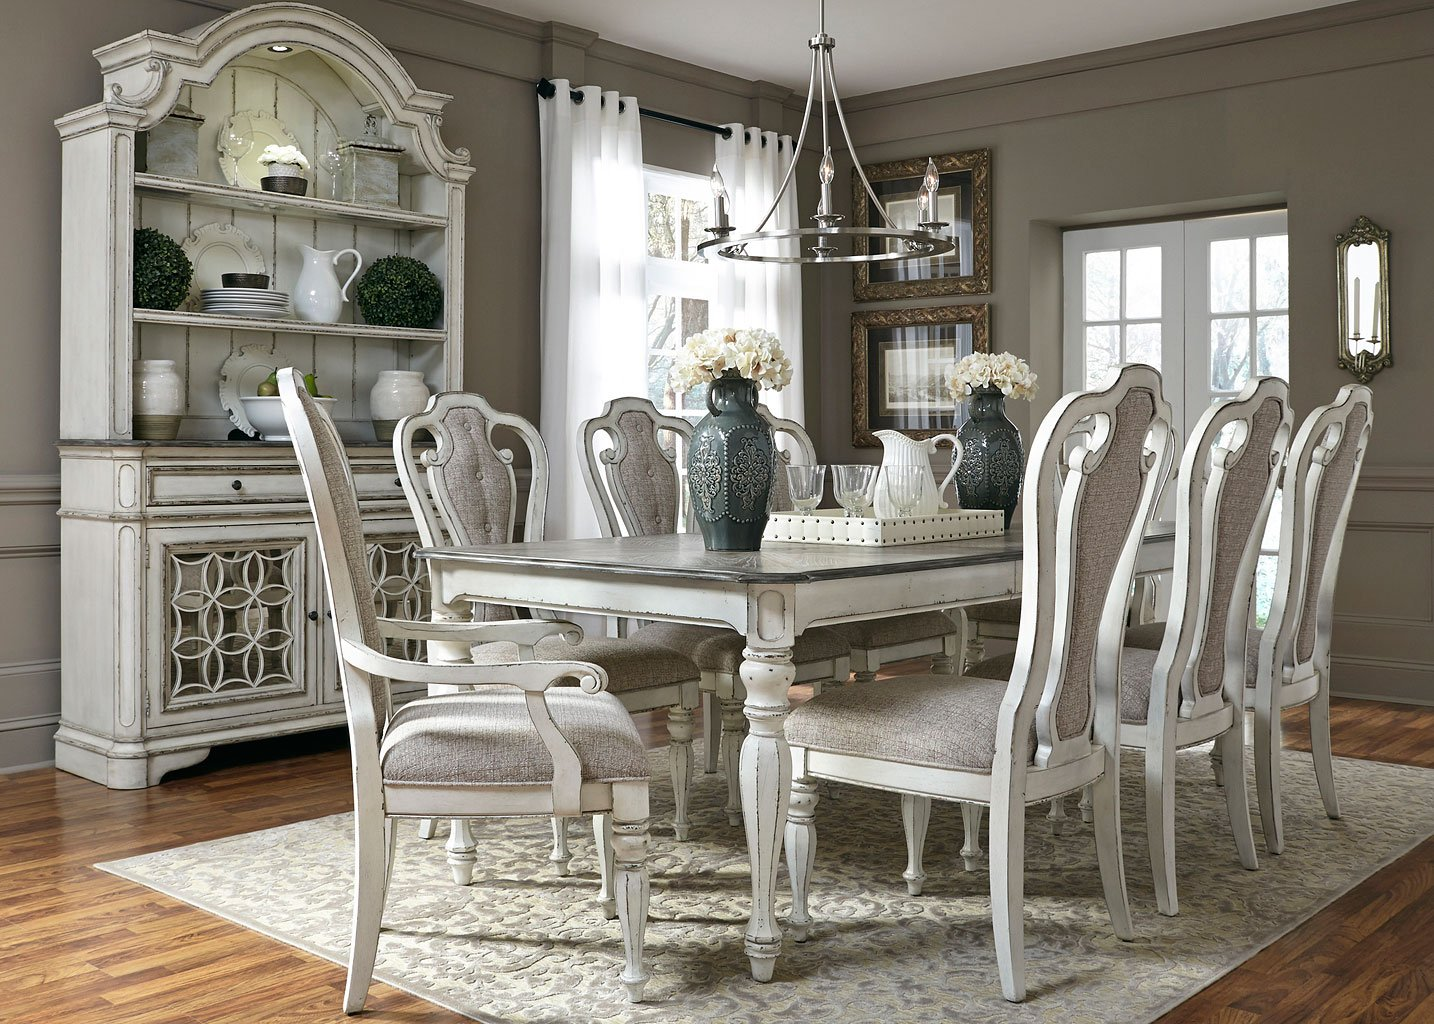 Magnolia Manor Dining Room Set w/ 108 Inch Table